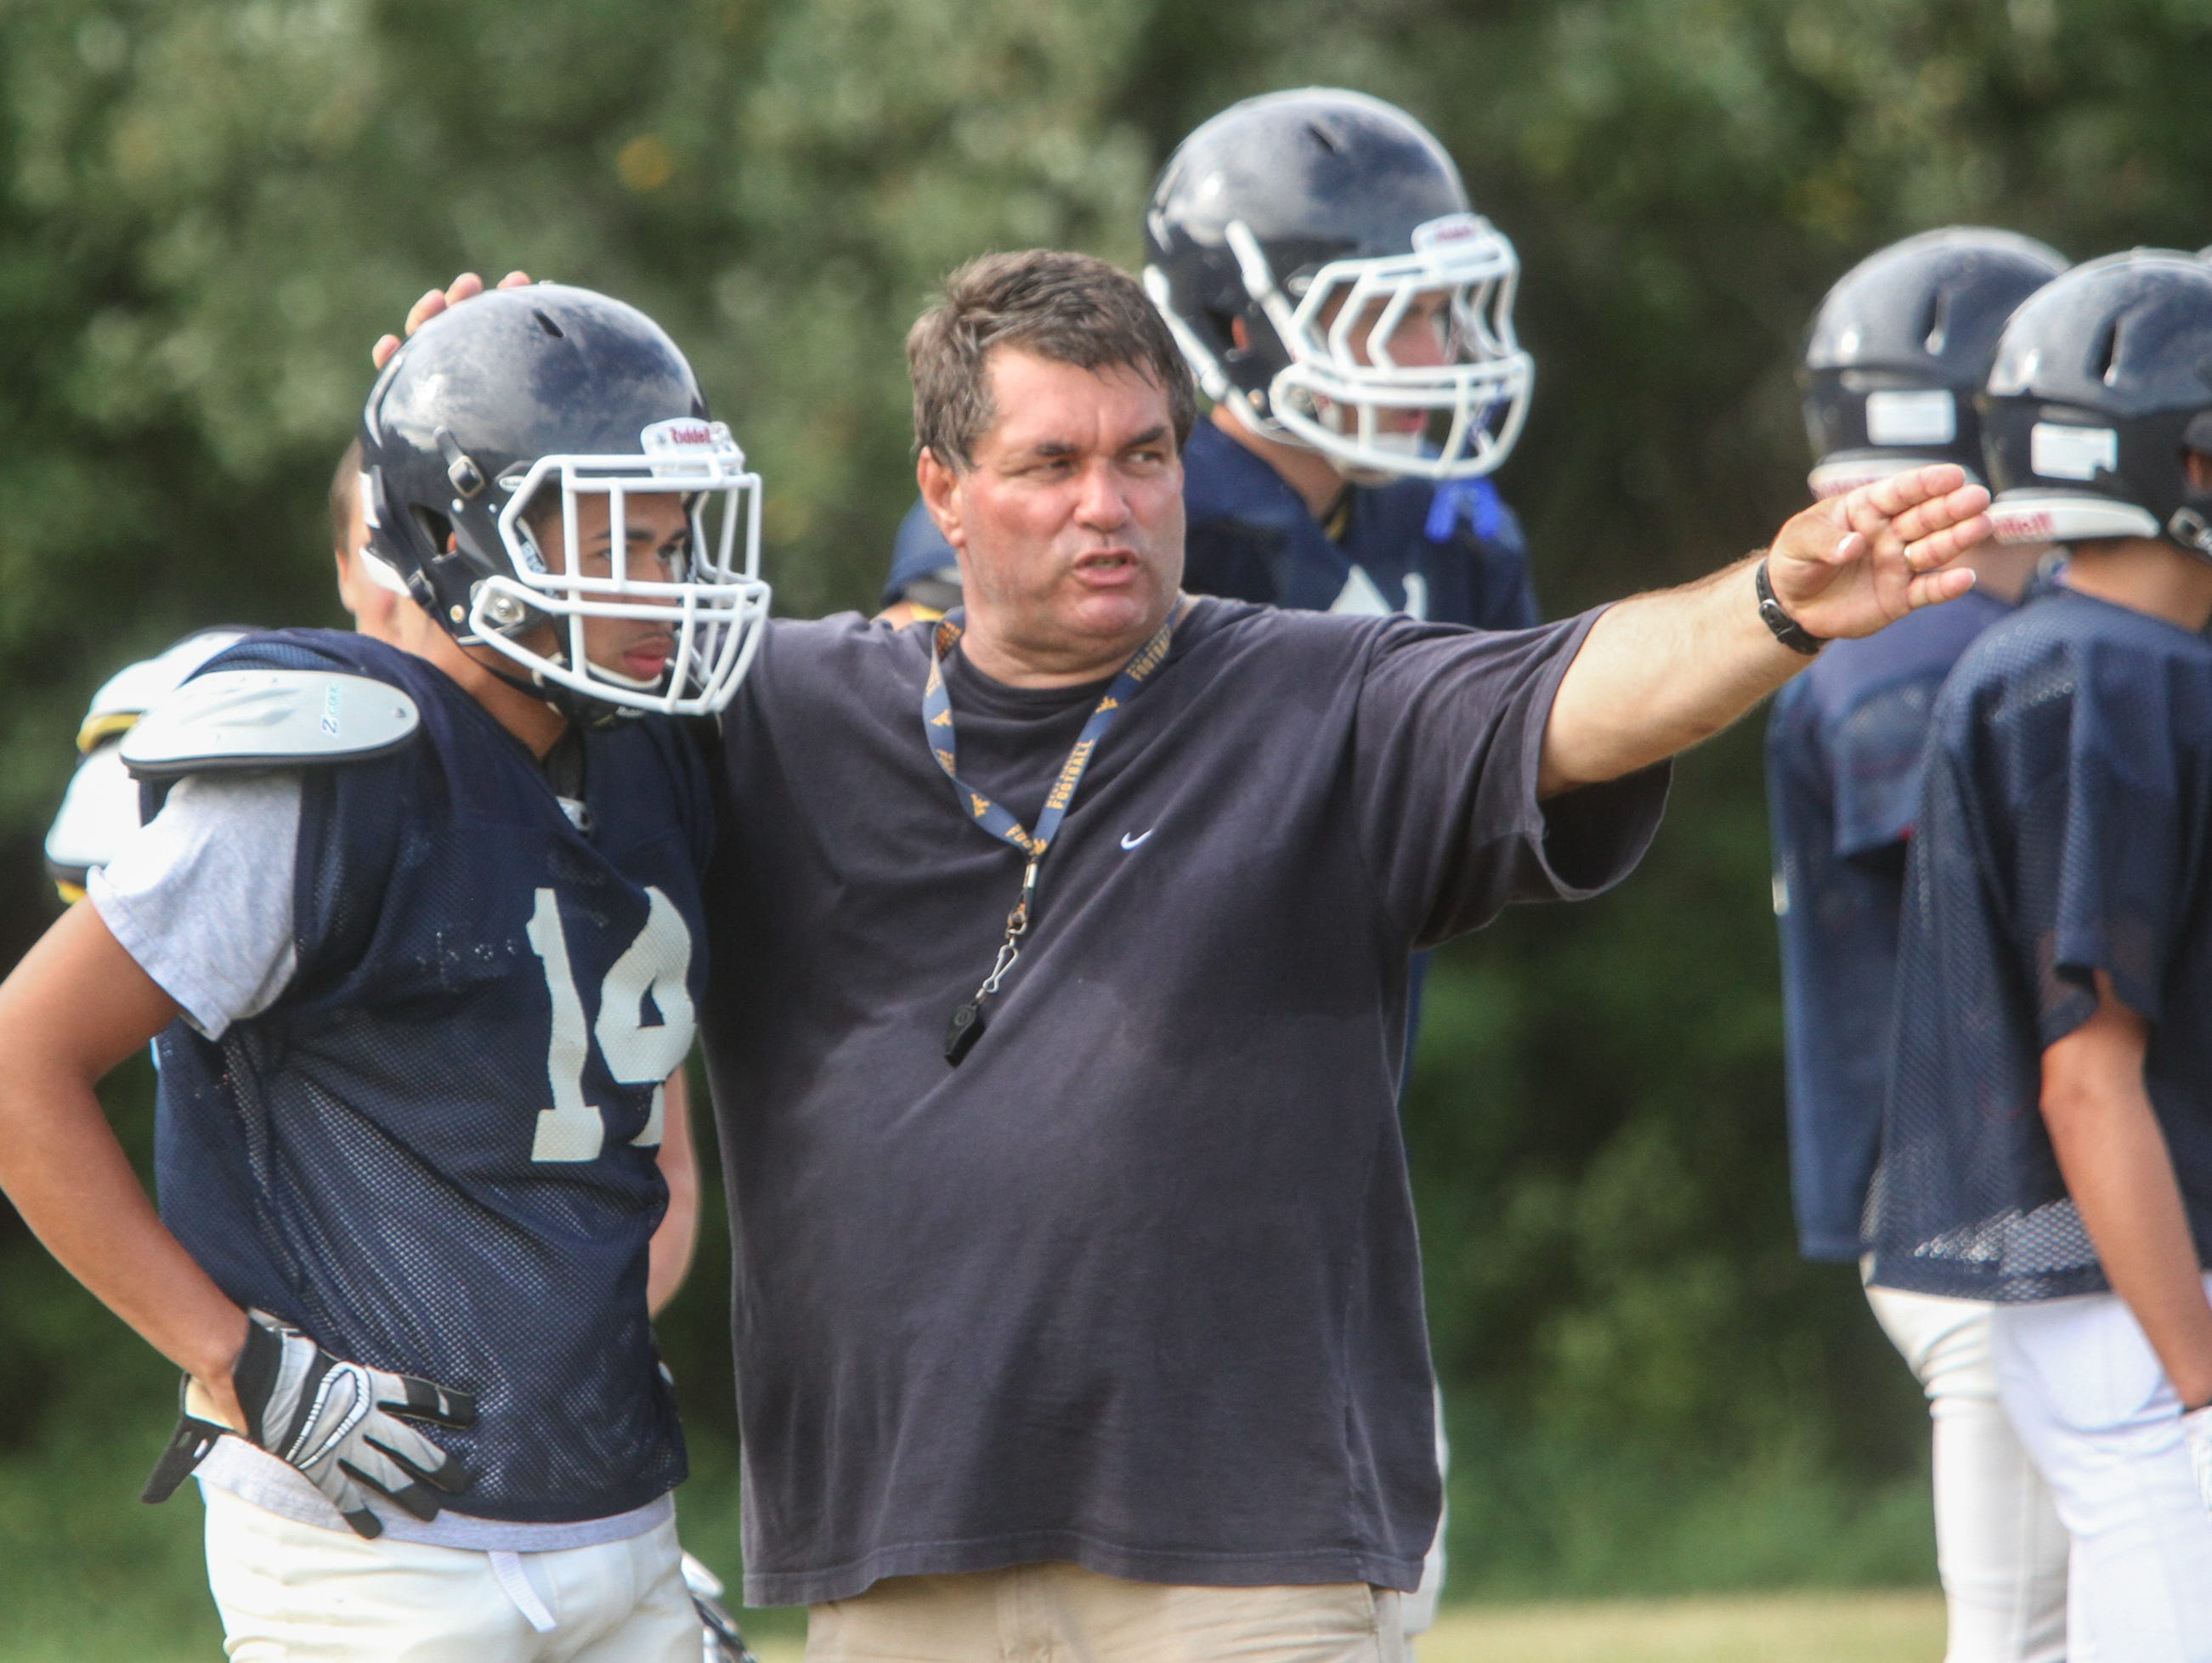 Former Howell coach and current Freehold Township head coach Cory Davies had a successful homecoming at Howell last Friday night as Freehold Township recorded a 21-14 win.